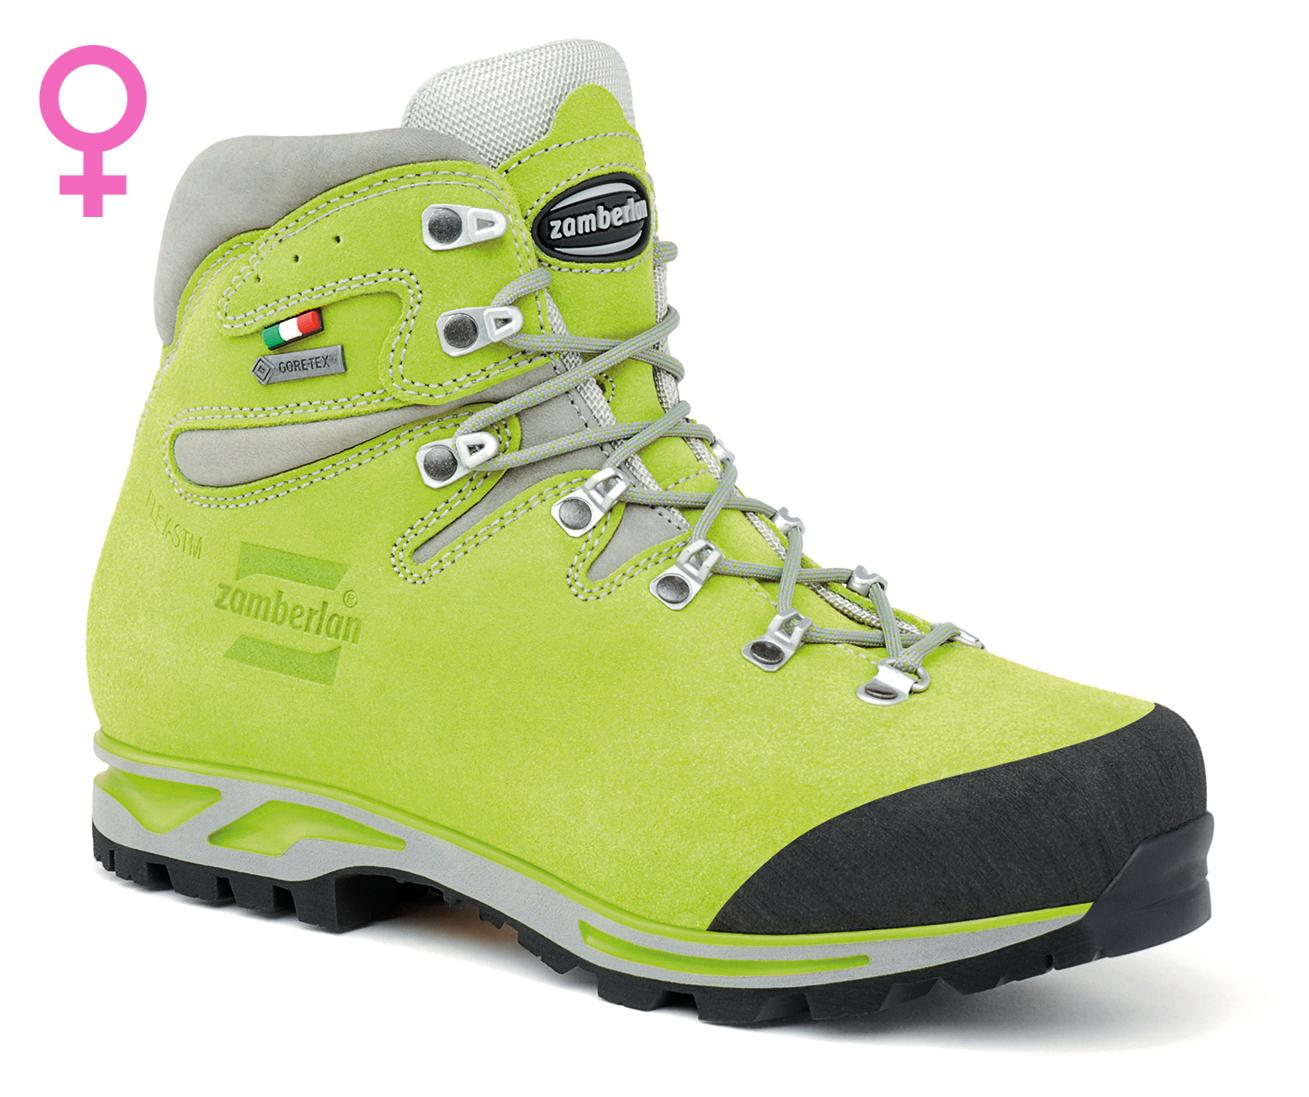 900 ROLLE GTX WNS   -   Hiking  Boots   -   Acid green